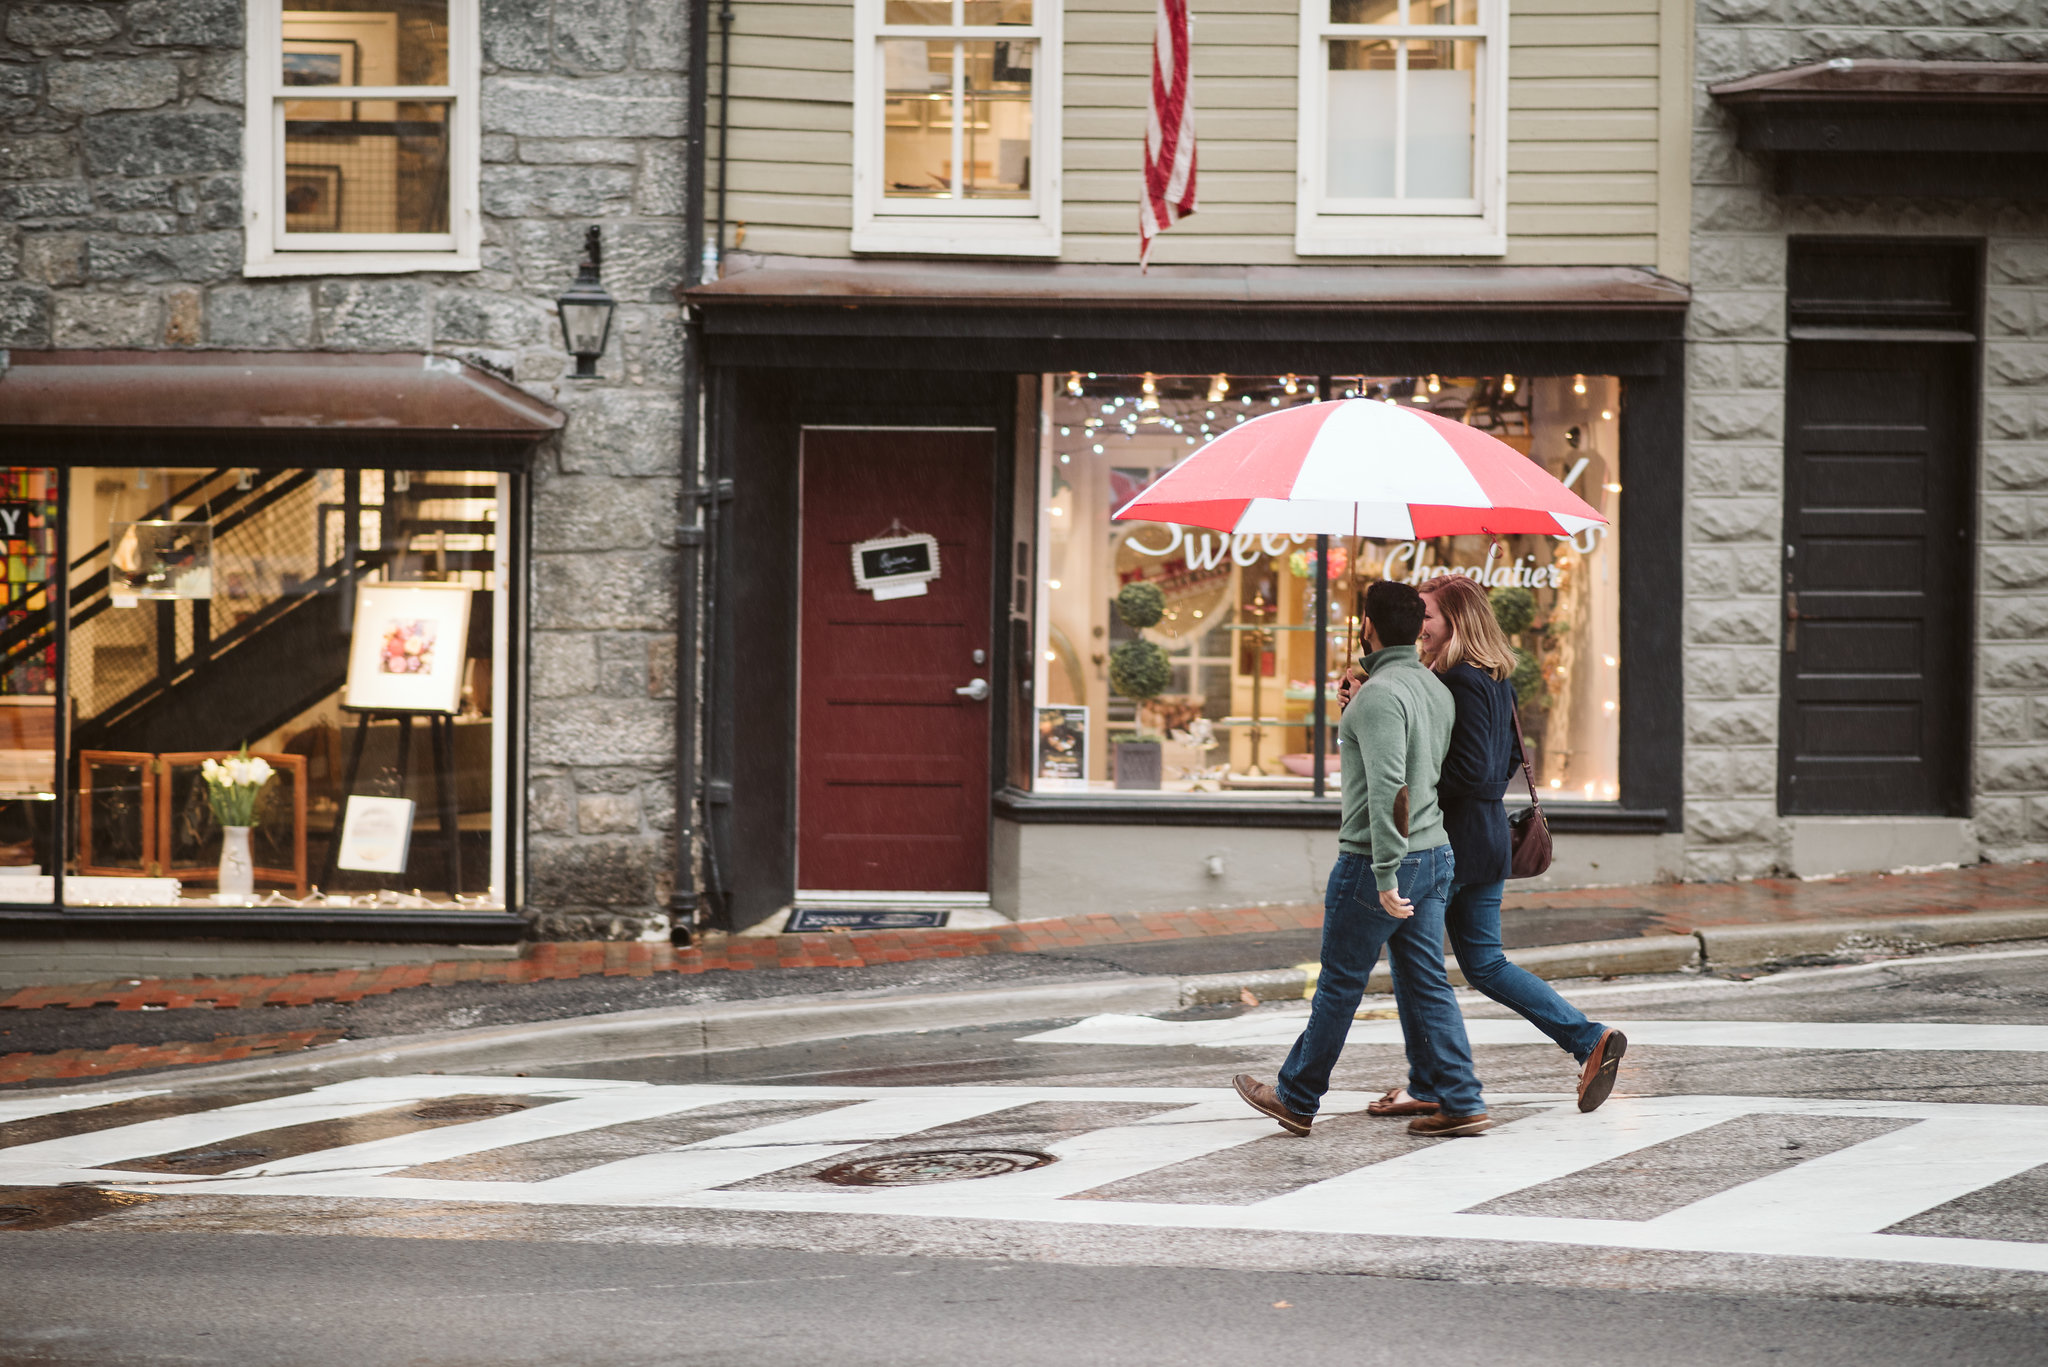 Engagement Photos, Rainy, Ellicott City, Maryland Wedding Photographer, Winter, Historical, Classic, Traditional, Outdoor, Bride and Groom Walking Downtown, Walking in the Rain